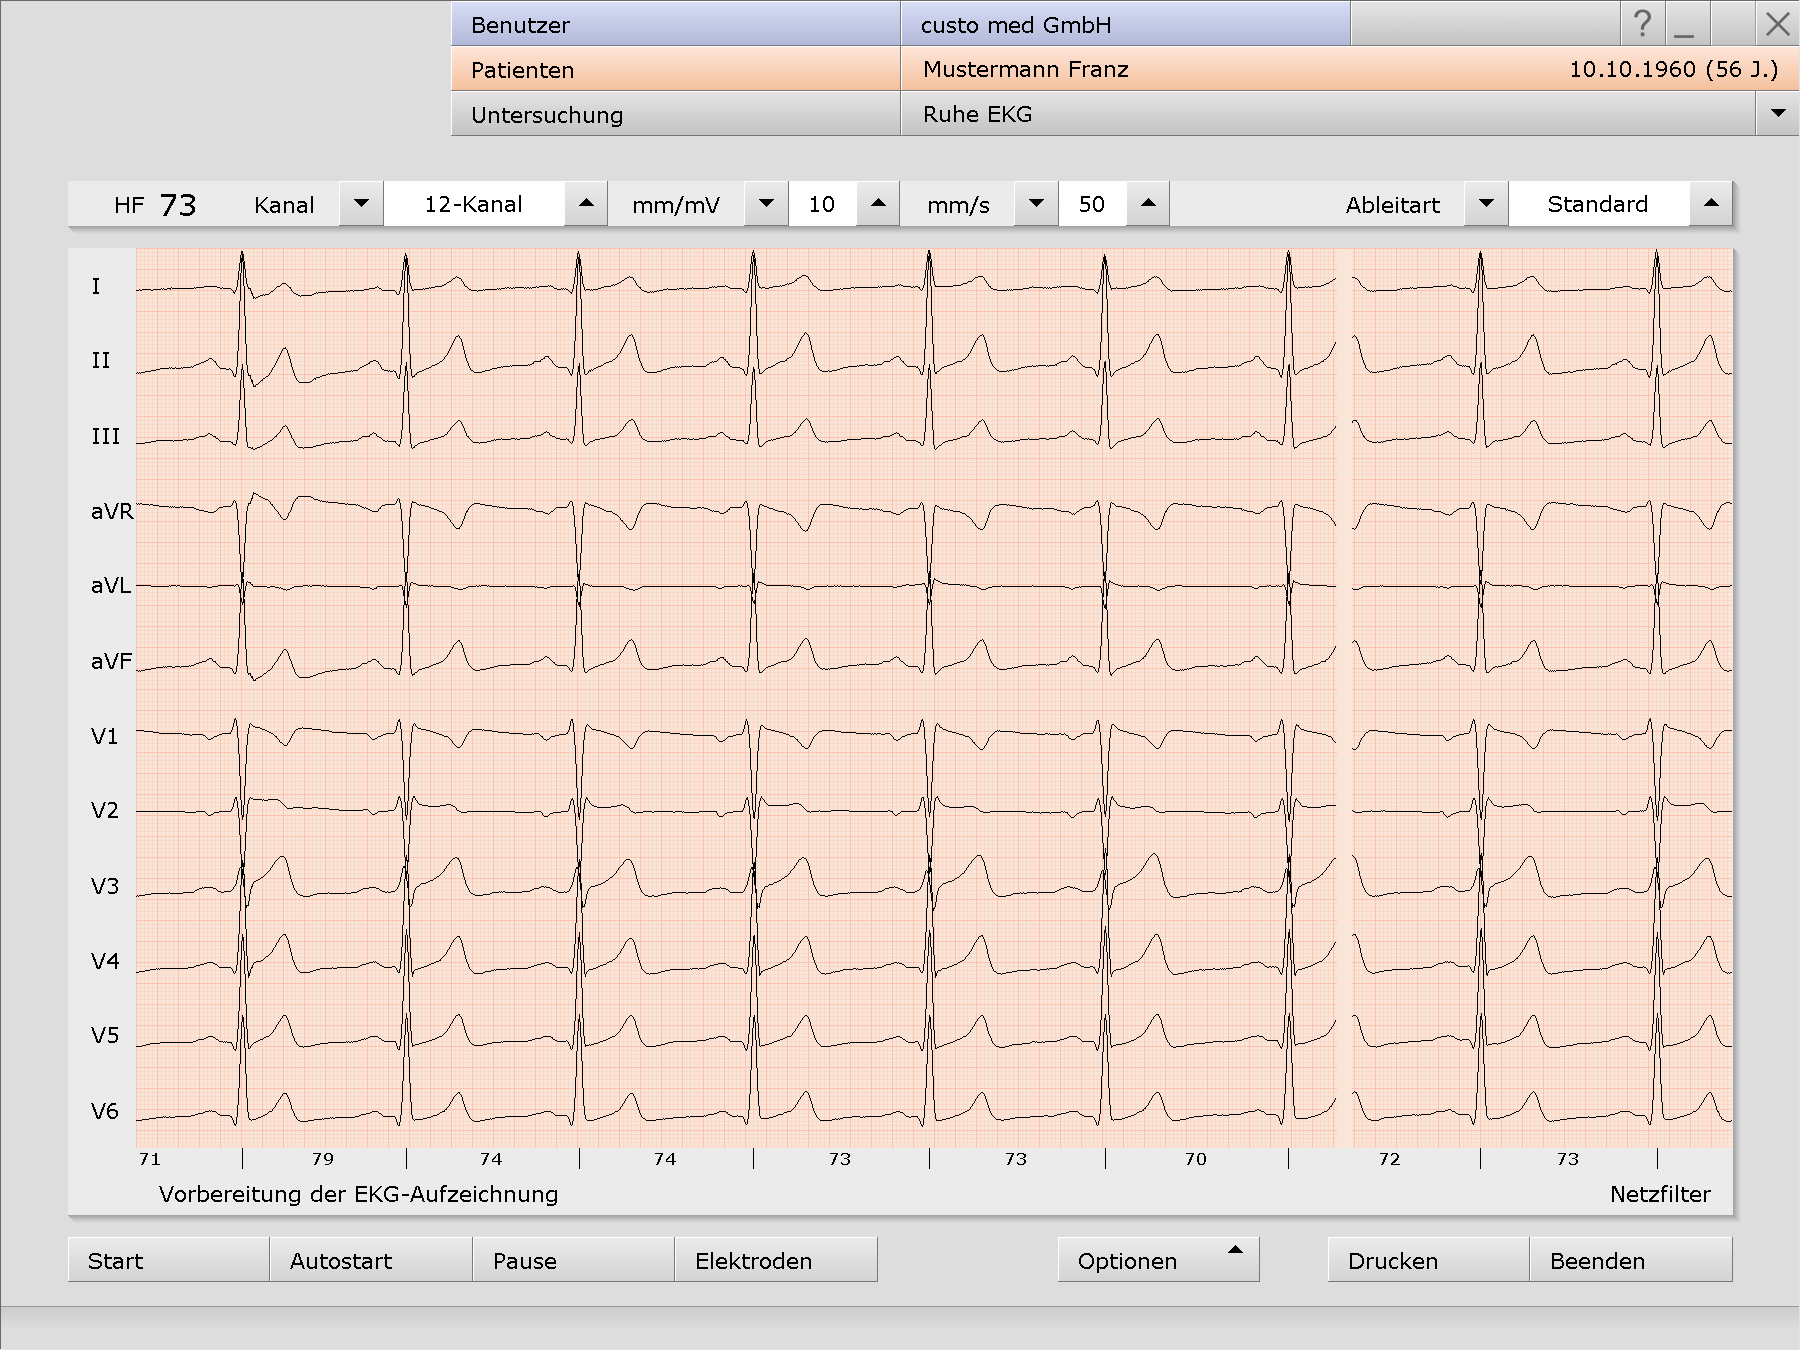 Ruhe-EKG in custo diagnostic